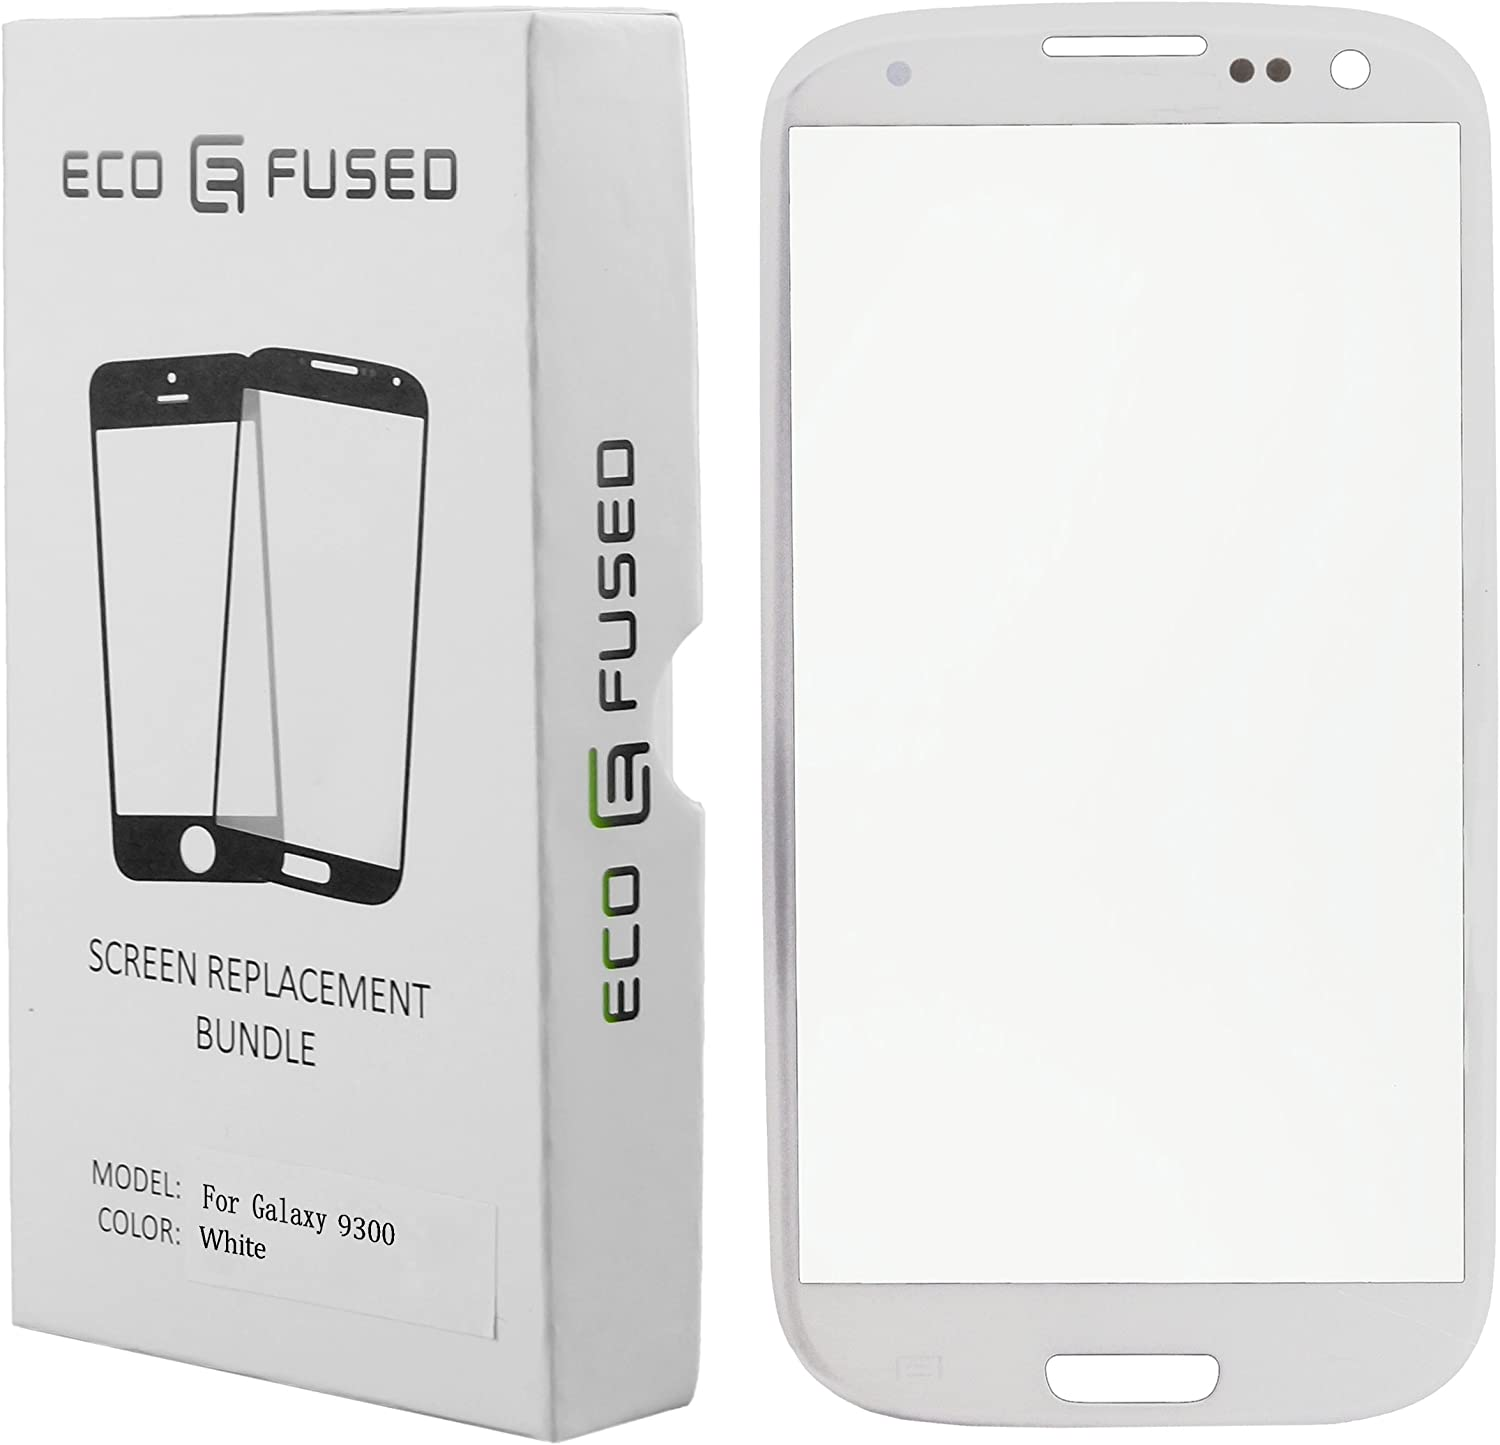 Eco-Fused Screen Replacement Kit Compatible with Samsung Galaxy S3 Including Replacement Glass/Tool Kit/Adhesive Sticker Tape/Tweezers/Microfiber Cleaning Cloth/Instruction Manual